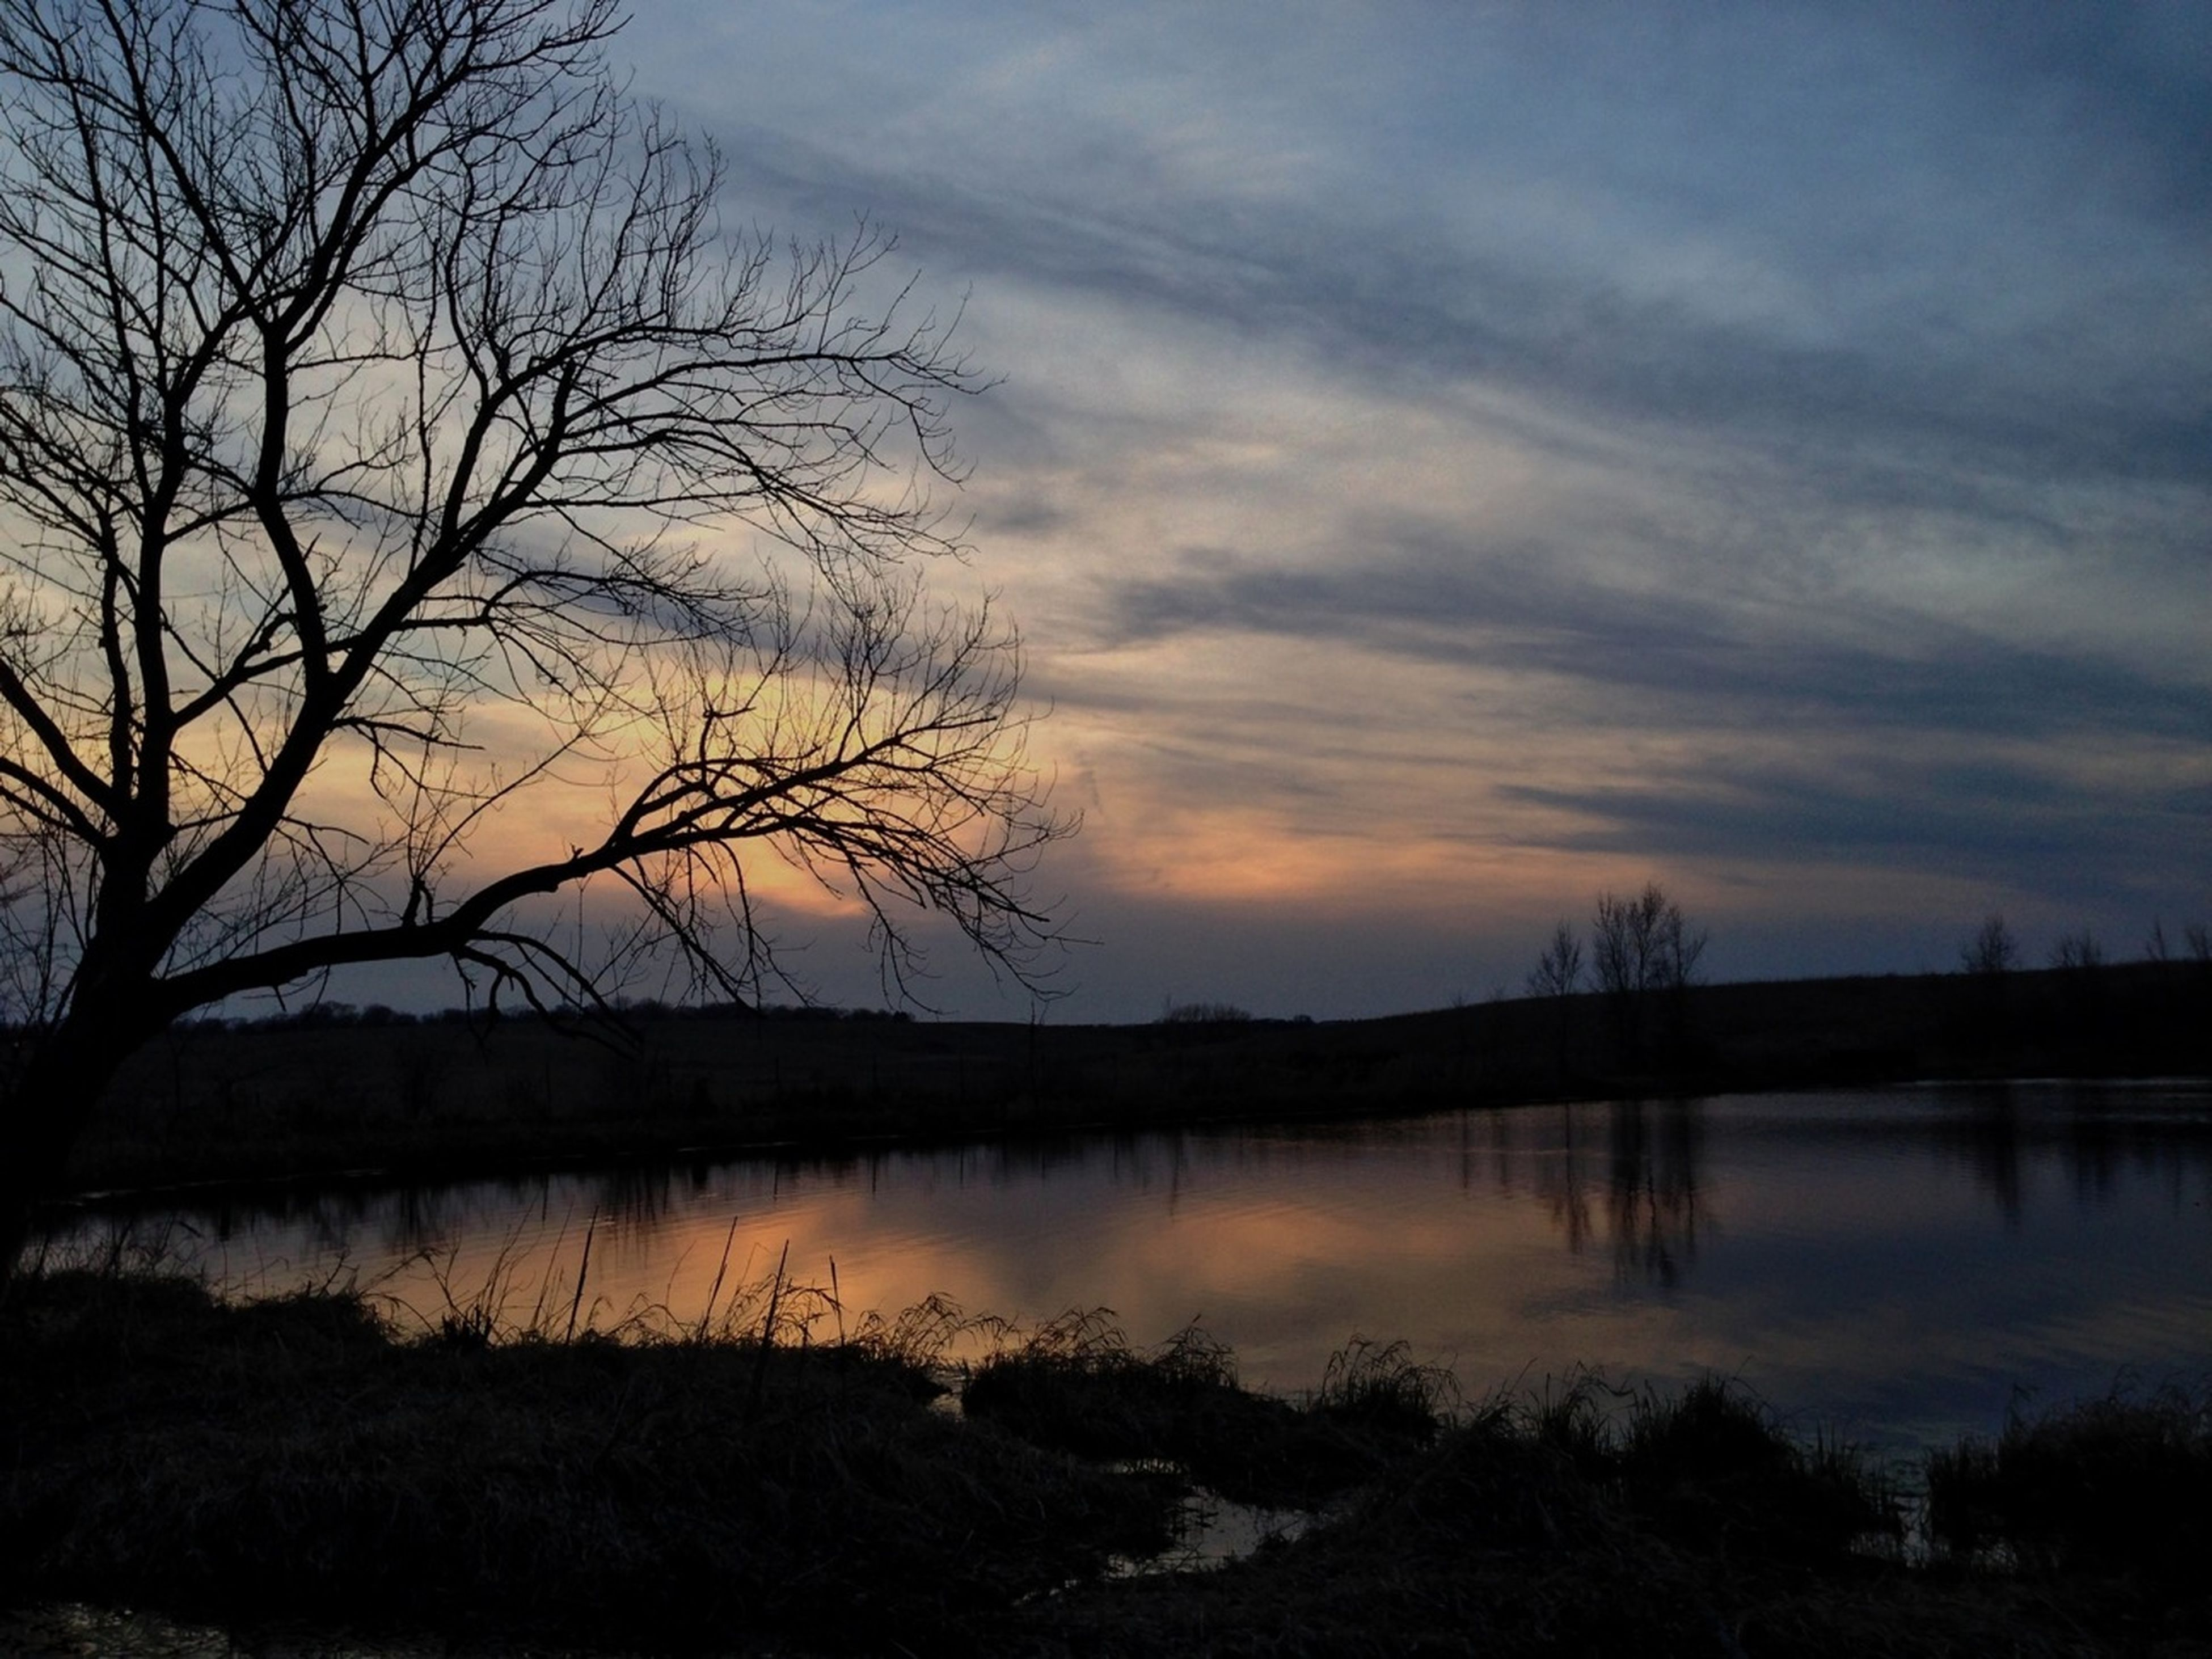 sunset, tranquil scene, tranquility, silhouette, water, sky, scenics, lake, bare tree, reflection, beauty in nature, tree, cloud - sky, nature, idyllic, cloud, dusk, calm, non-urban scene, river